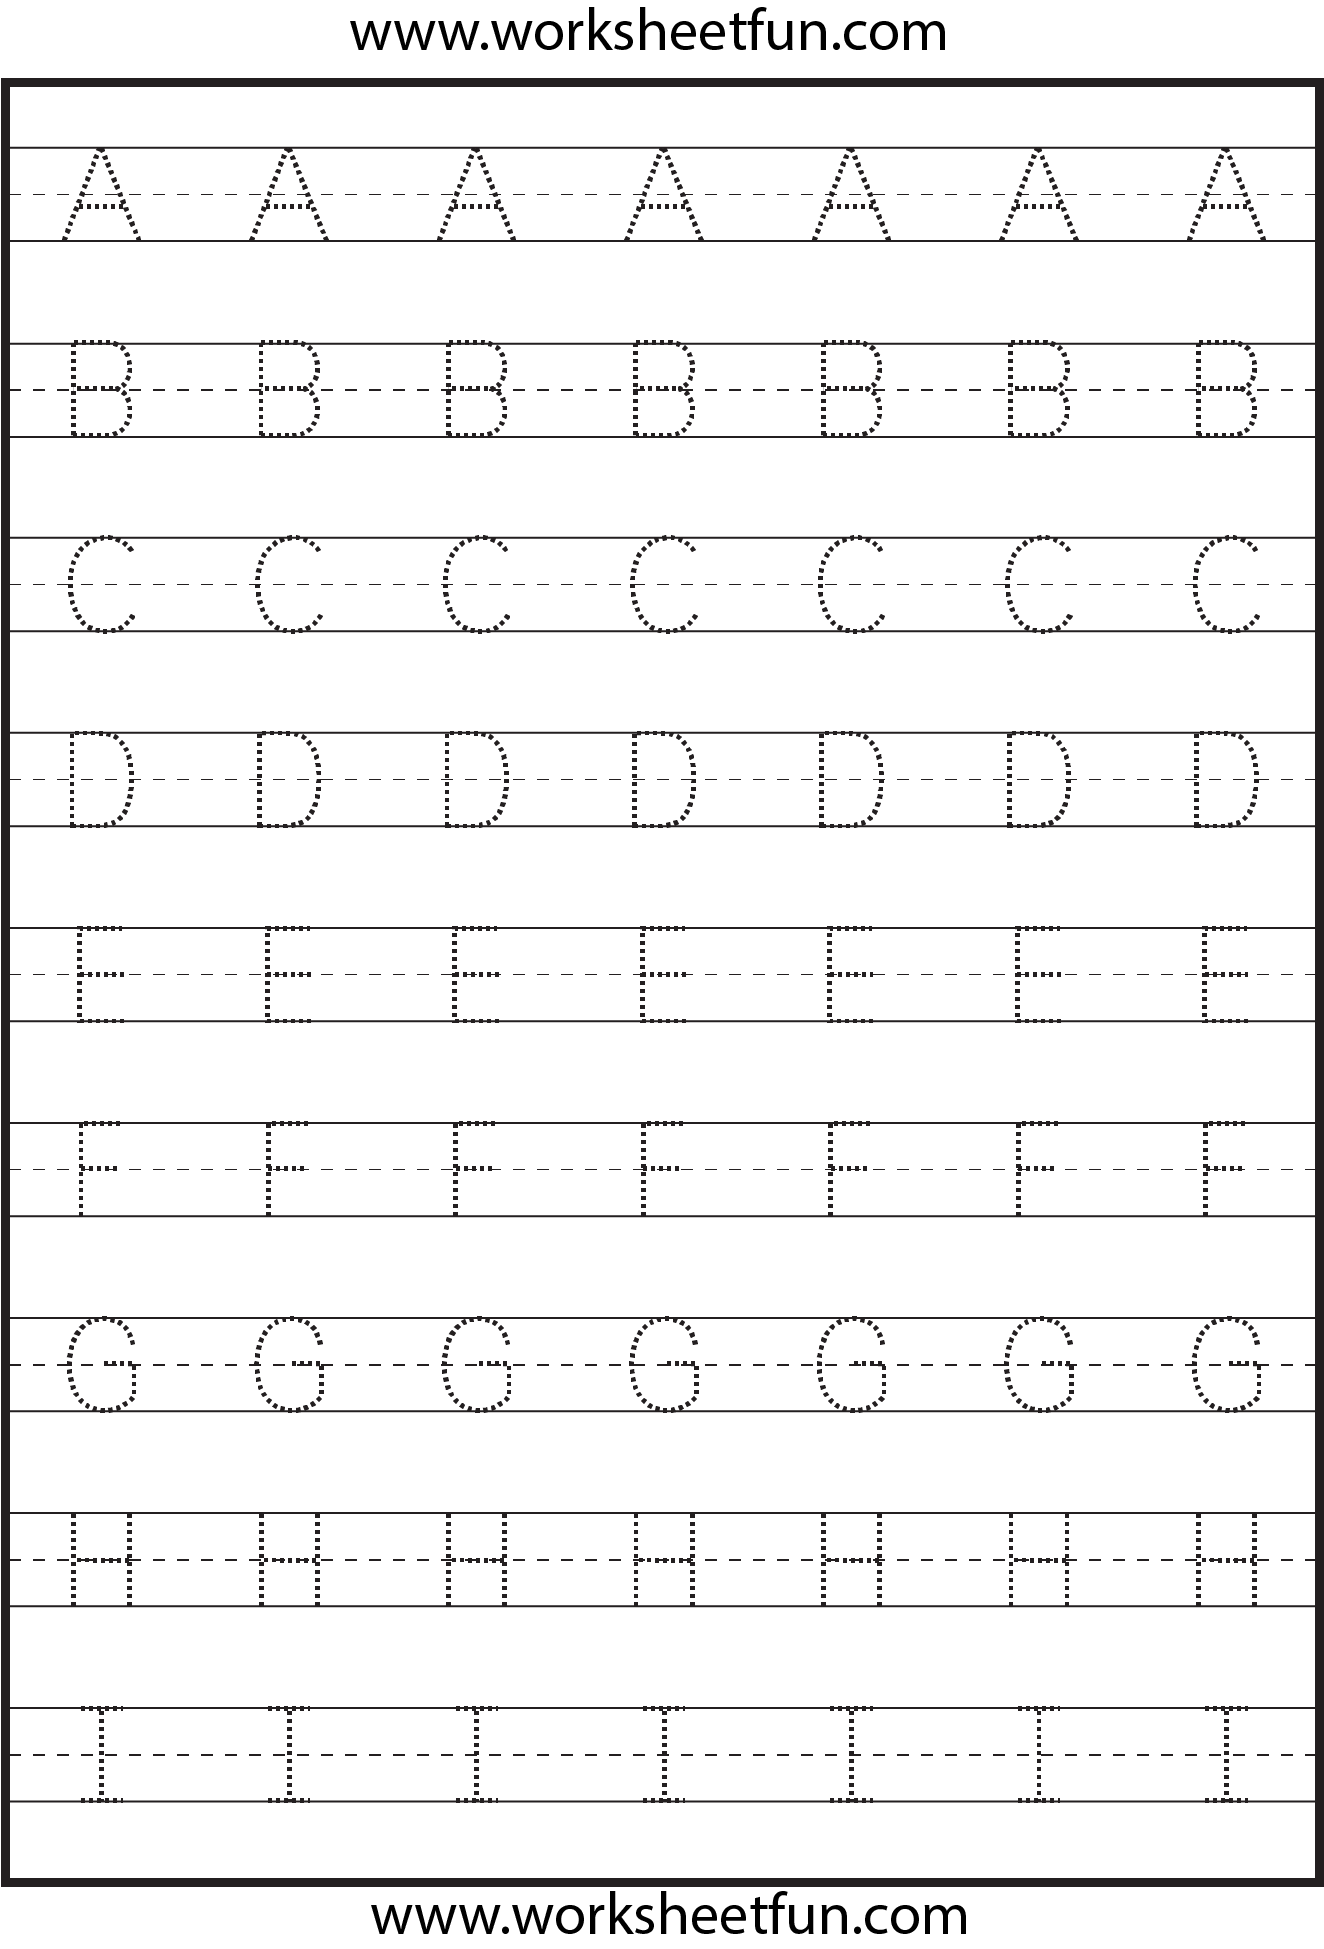 Worksheet Trace Letters tracing uppercase letters capital 3 worksheets letter tracing